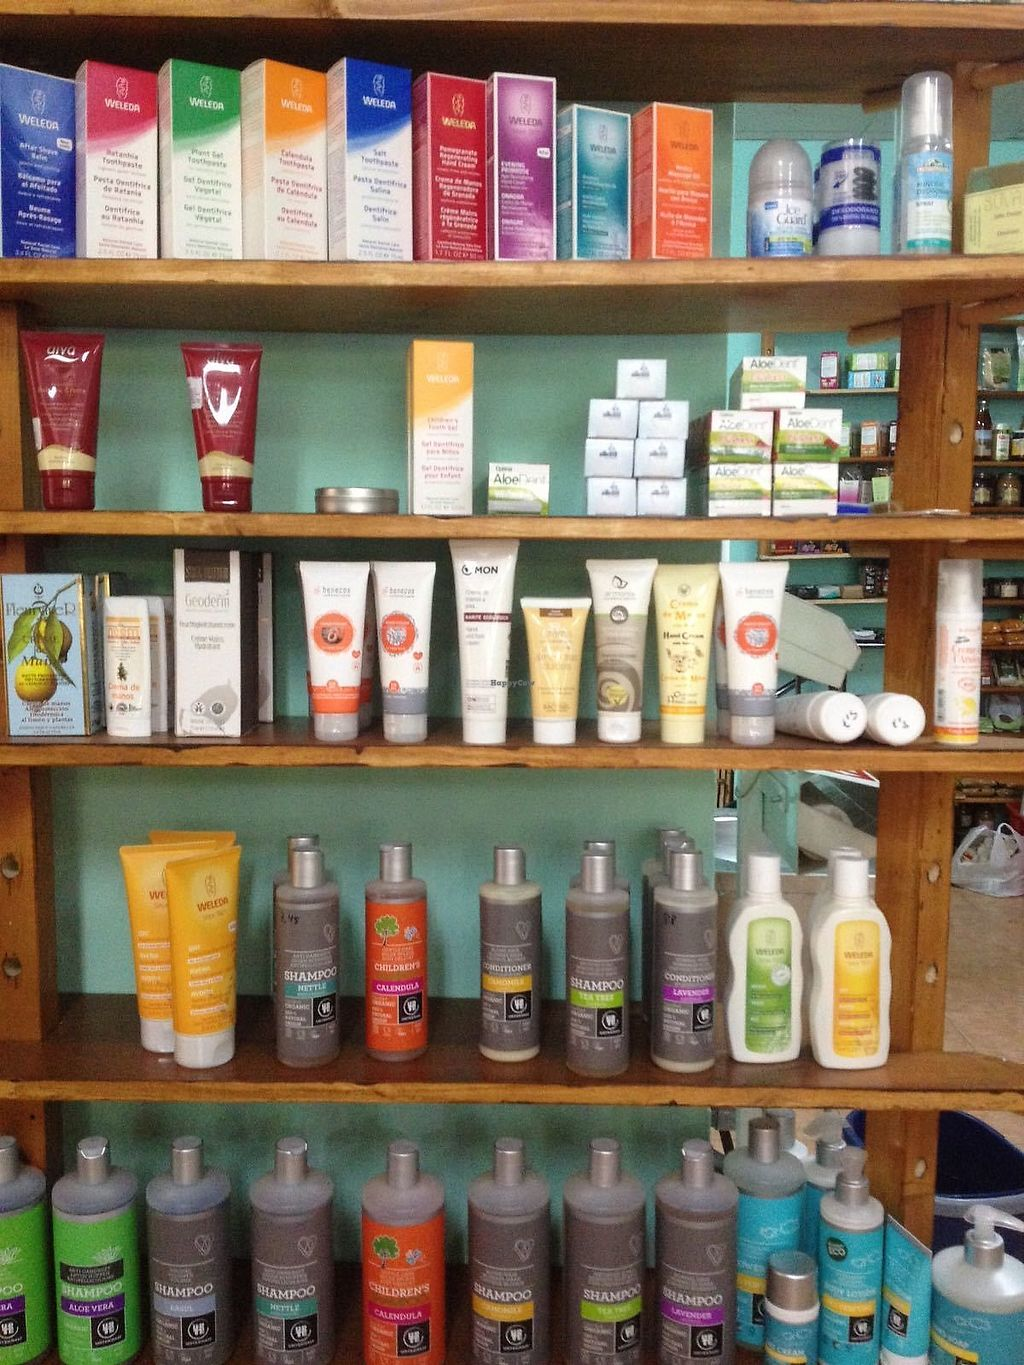 """Photo of Huerta Clarita  by <a href=""""/members/profile/AliceTahi"""">AliceTahi</a> <br/>So many different types of shampoo!  <br/> August 30, 2017  - <a href='/contact/abuse/image/99928/299097'>Report</a>"""